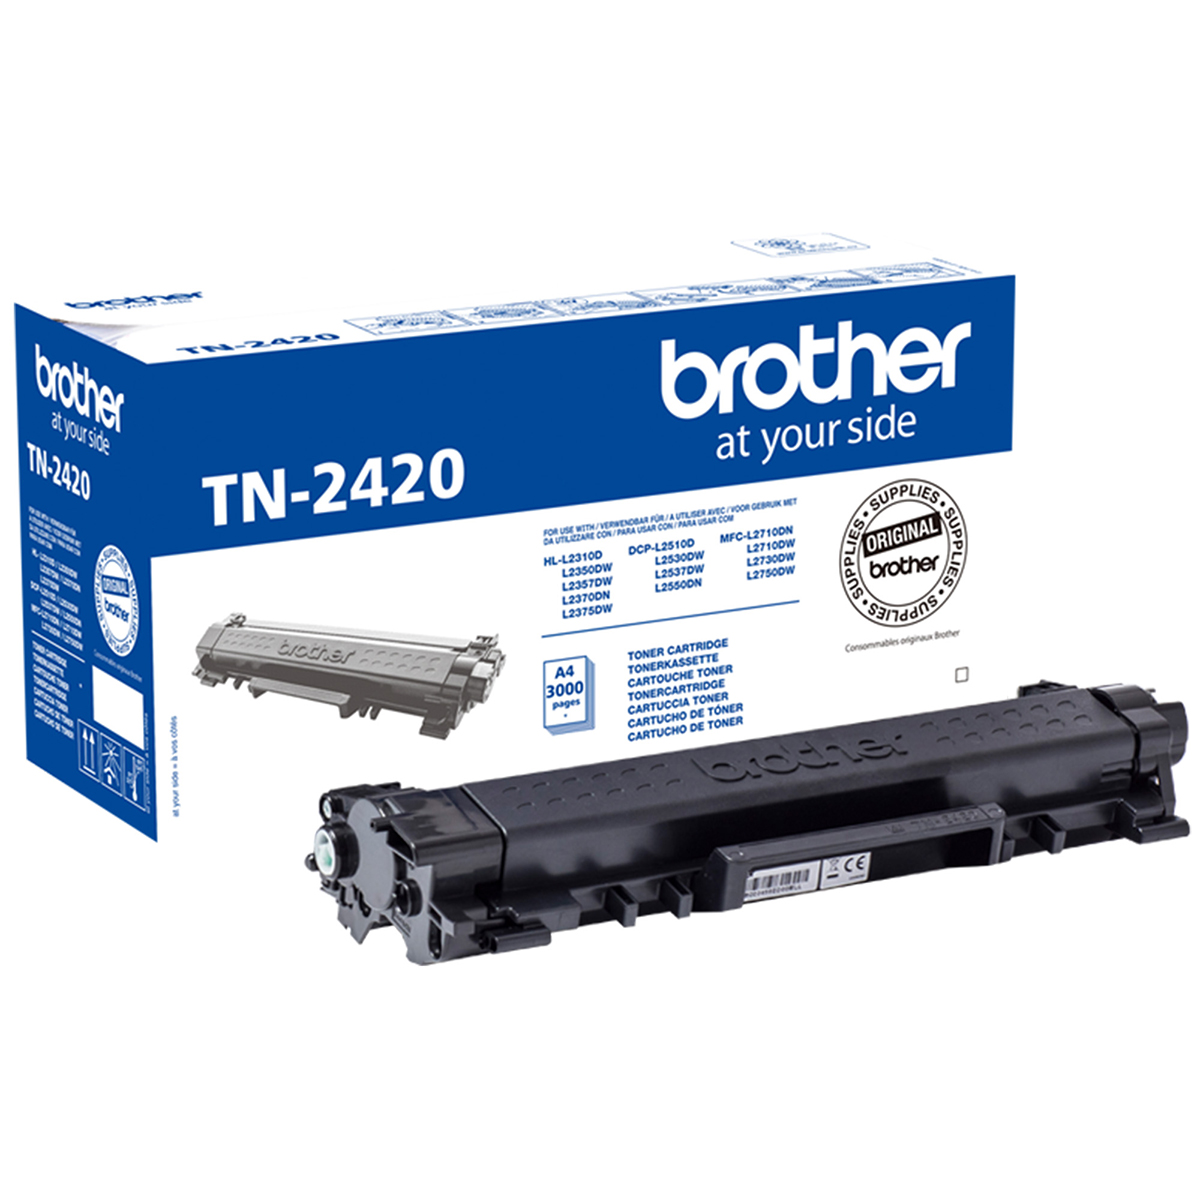 Brother TN2420 Black Toner 3000 Page Yield